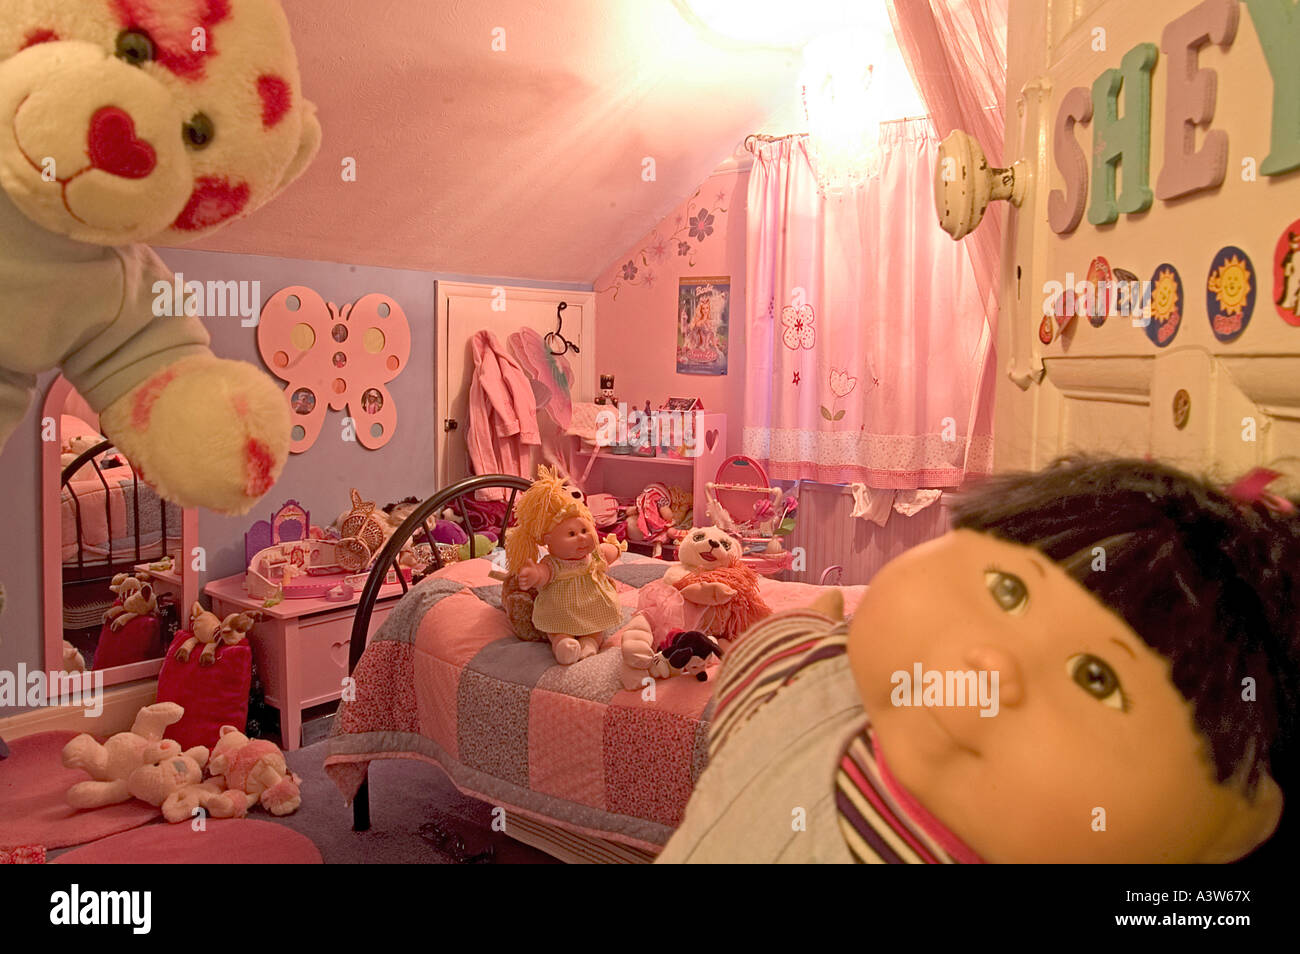 Girls Bedroom With Toys Stock Photo Alamy